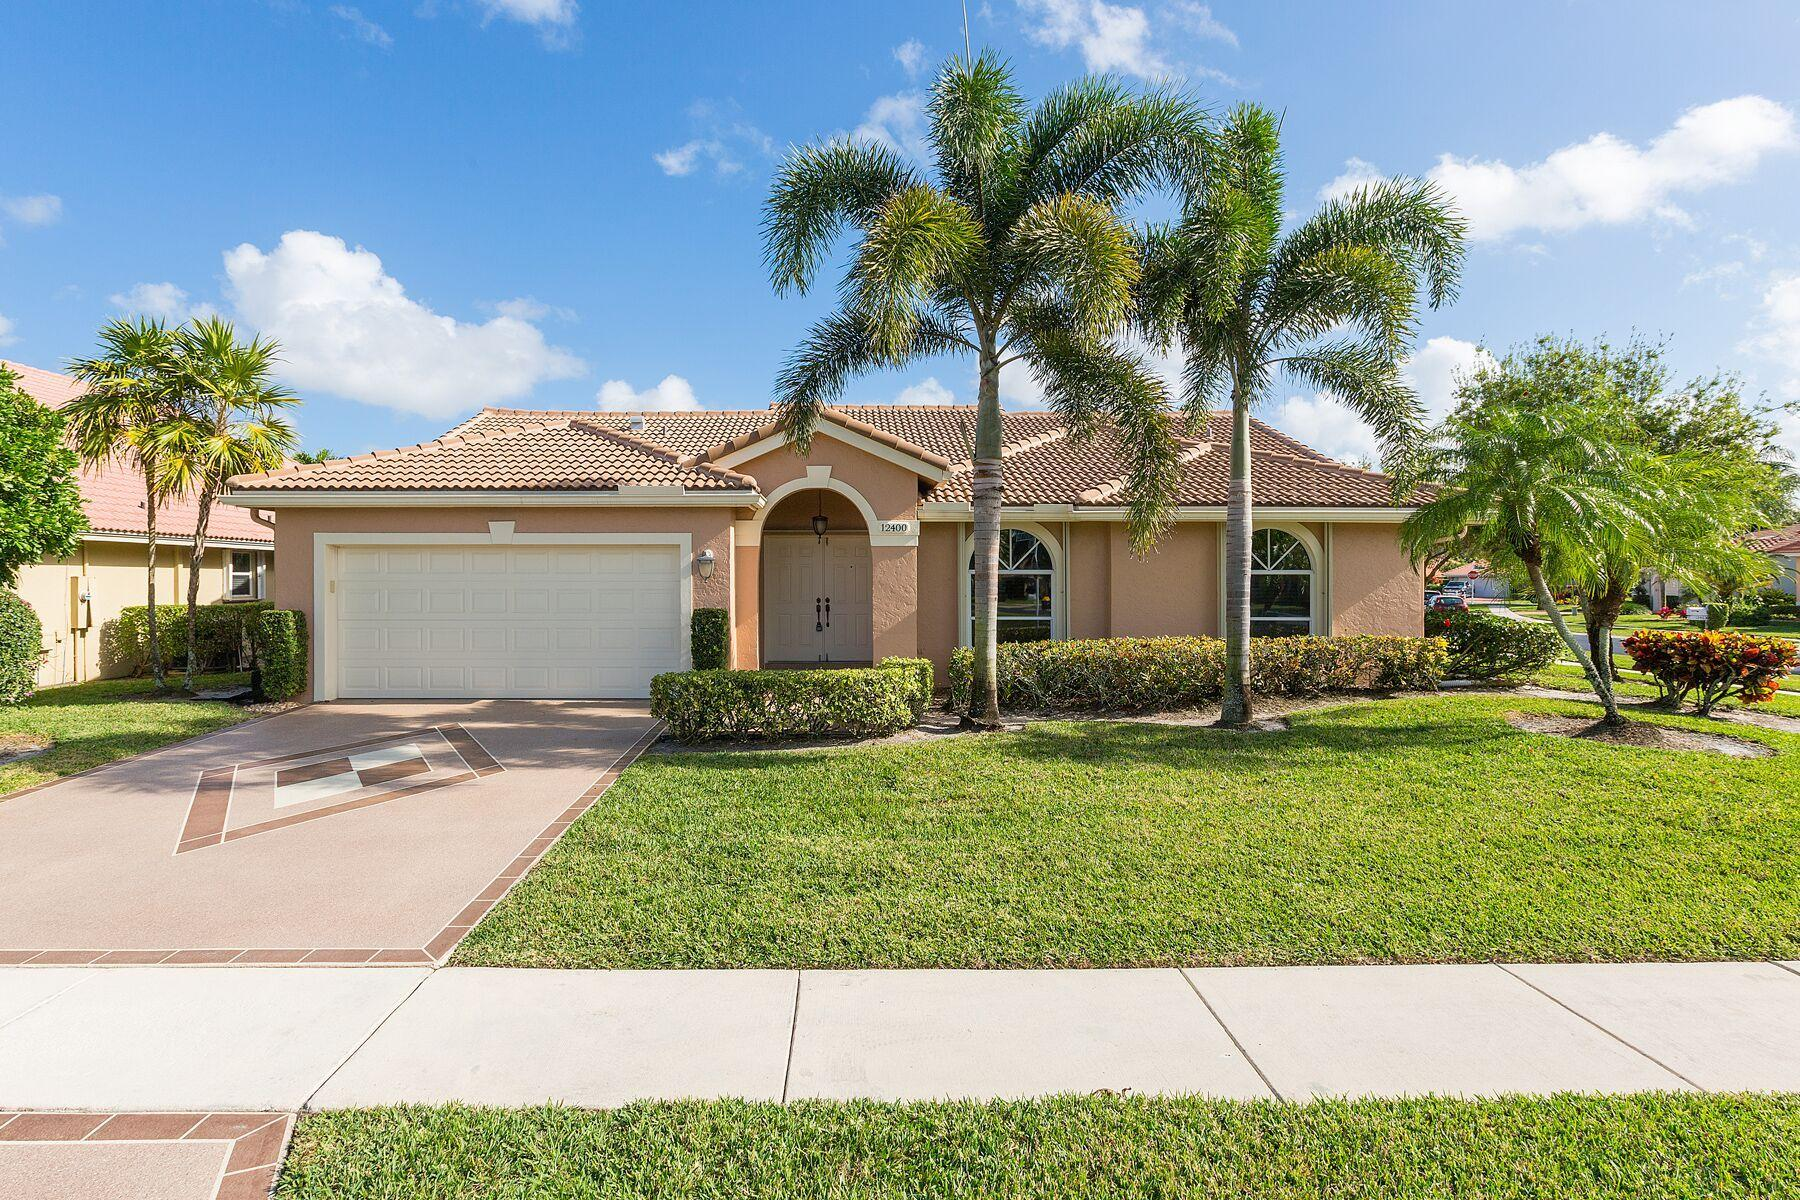 Home for sale in Westchester Cc Boynton Beach Florida